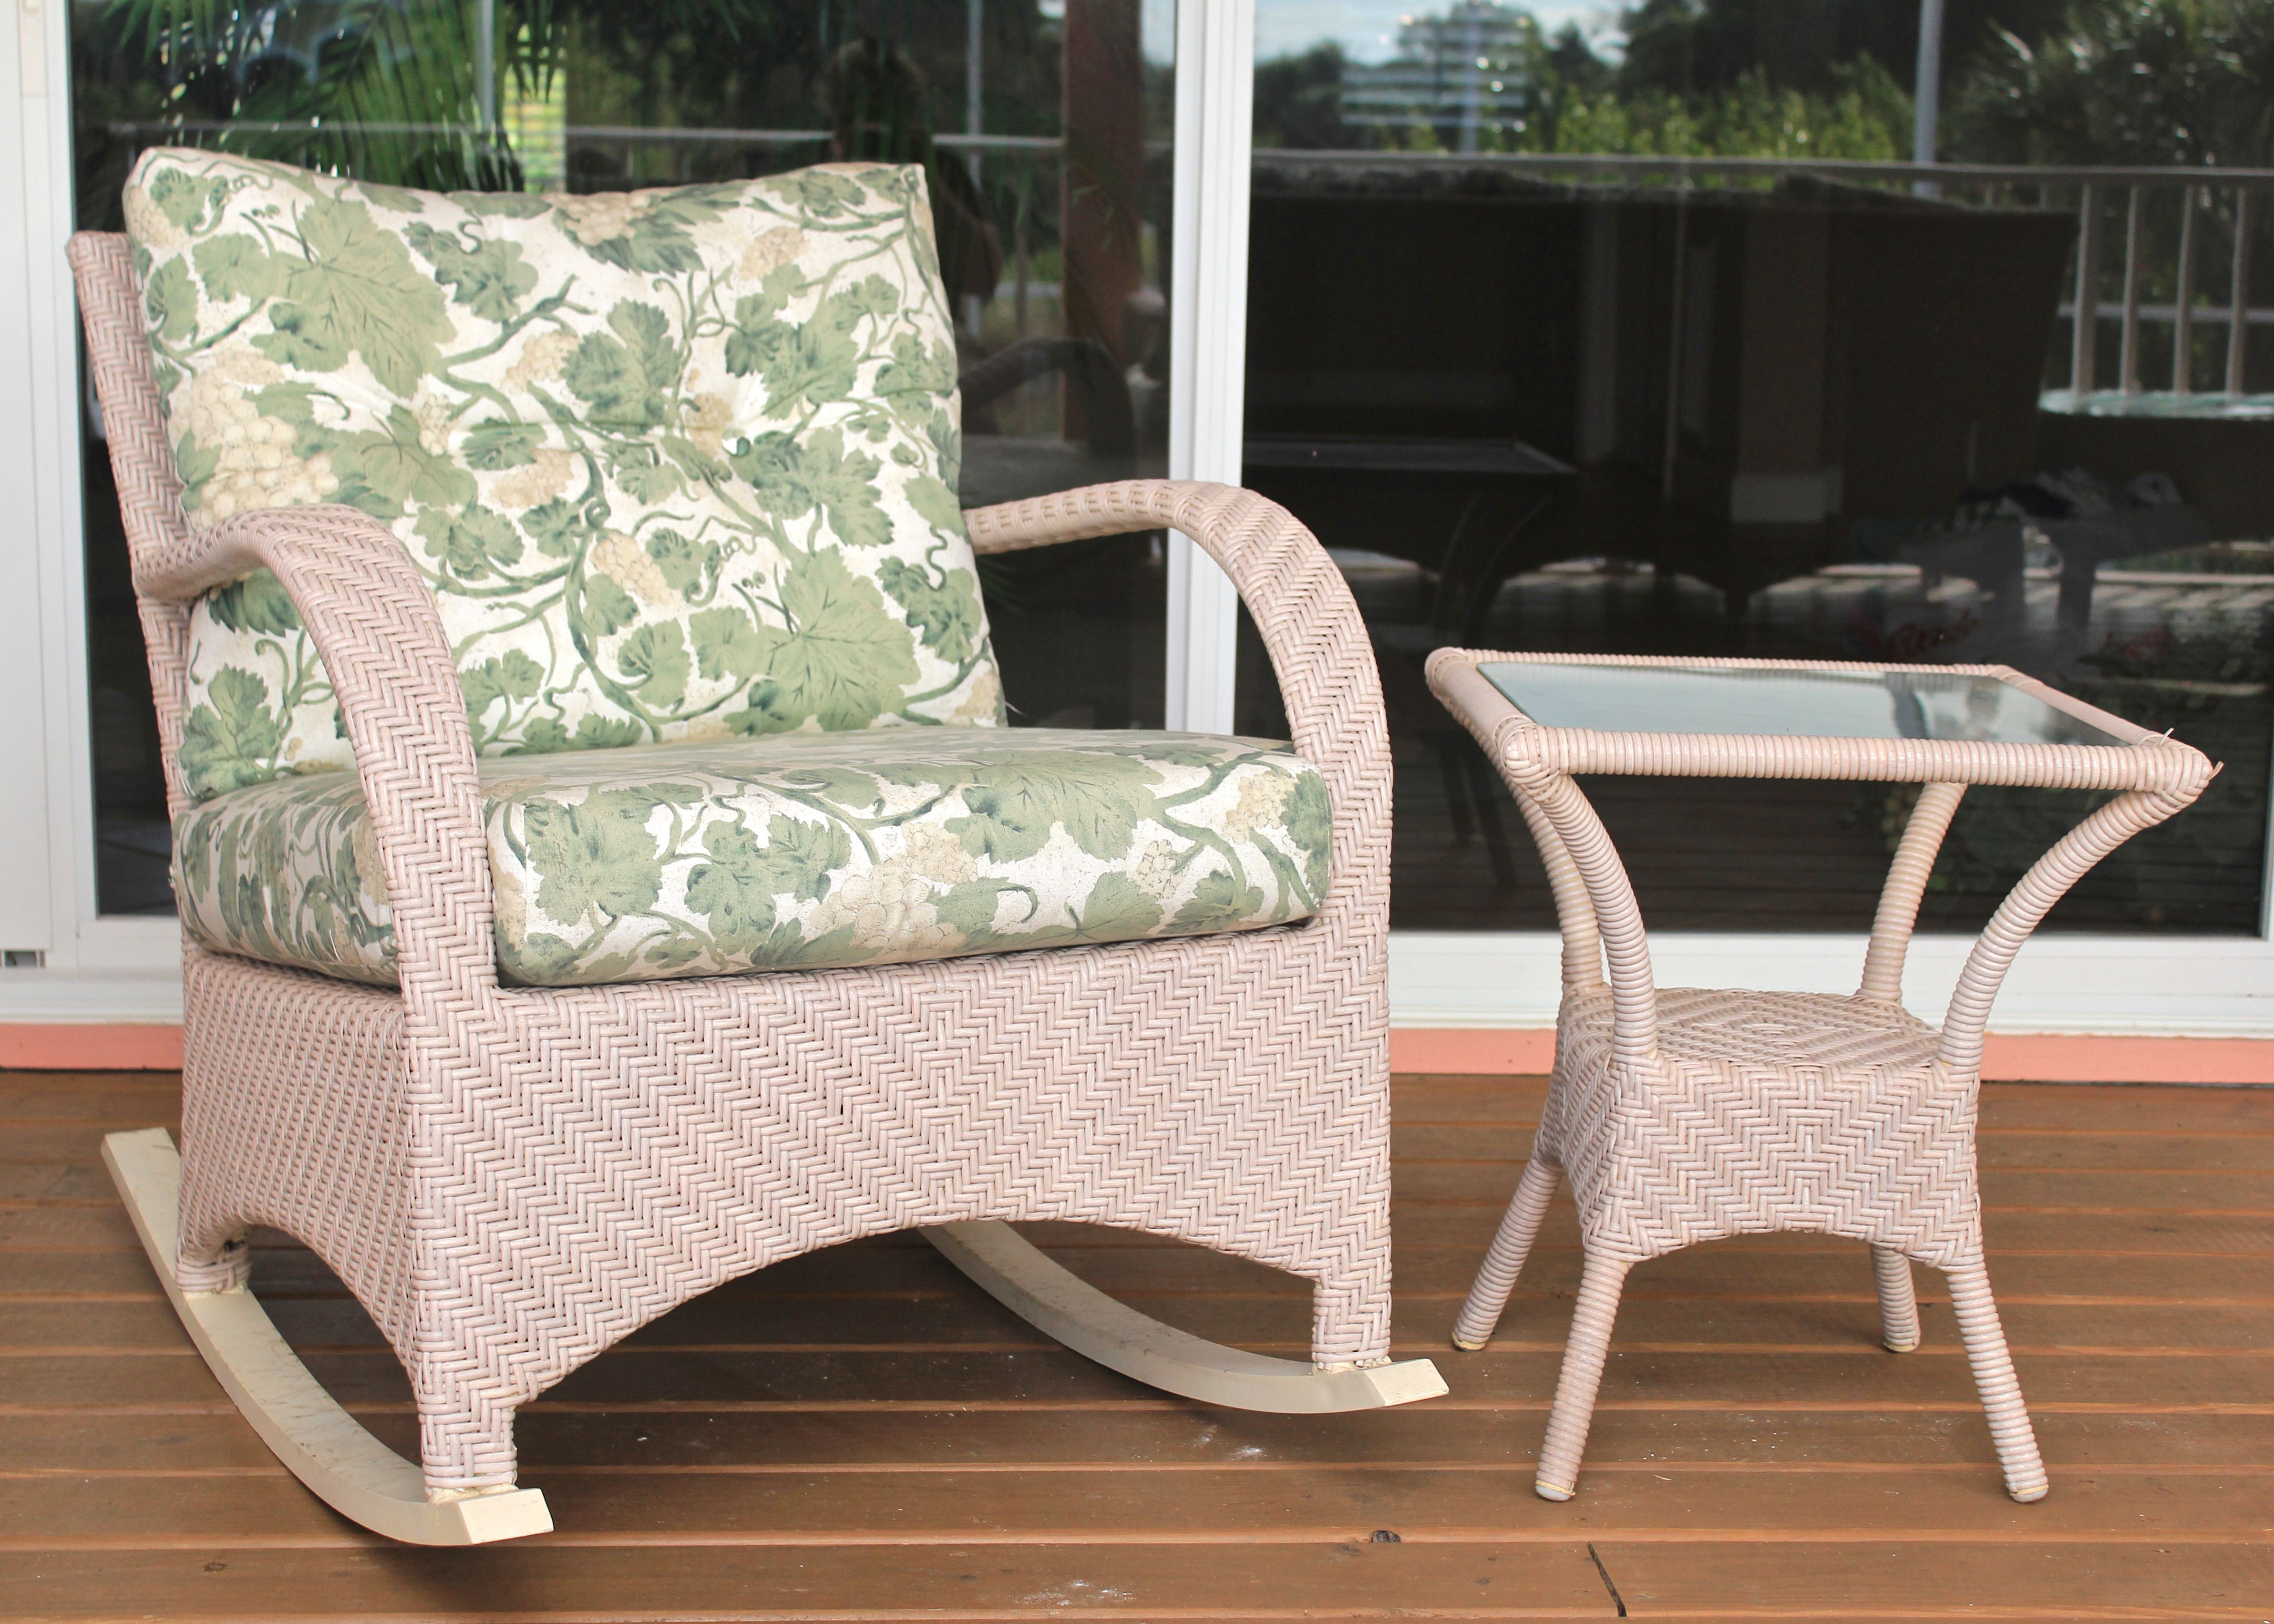 Pale Pink Ebel Outdoor Wicker Rocking Chair and Side Table EBTH